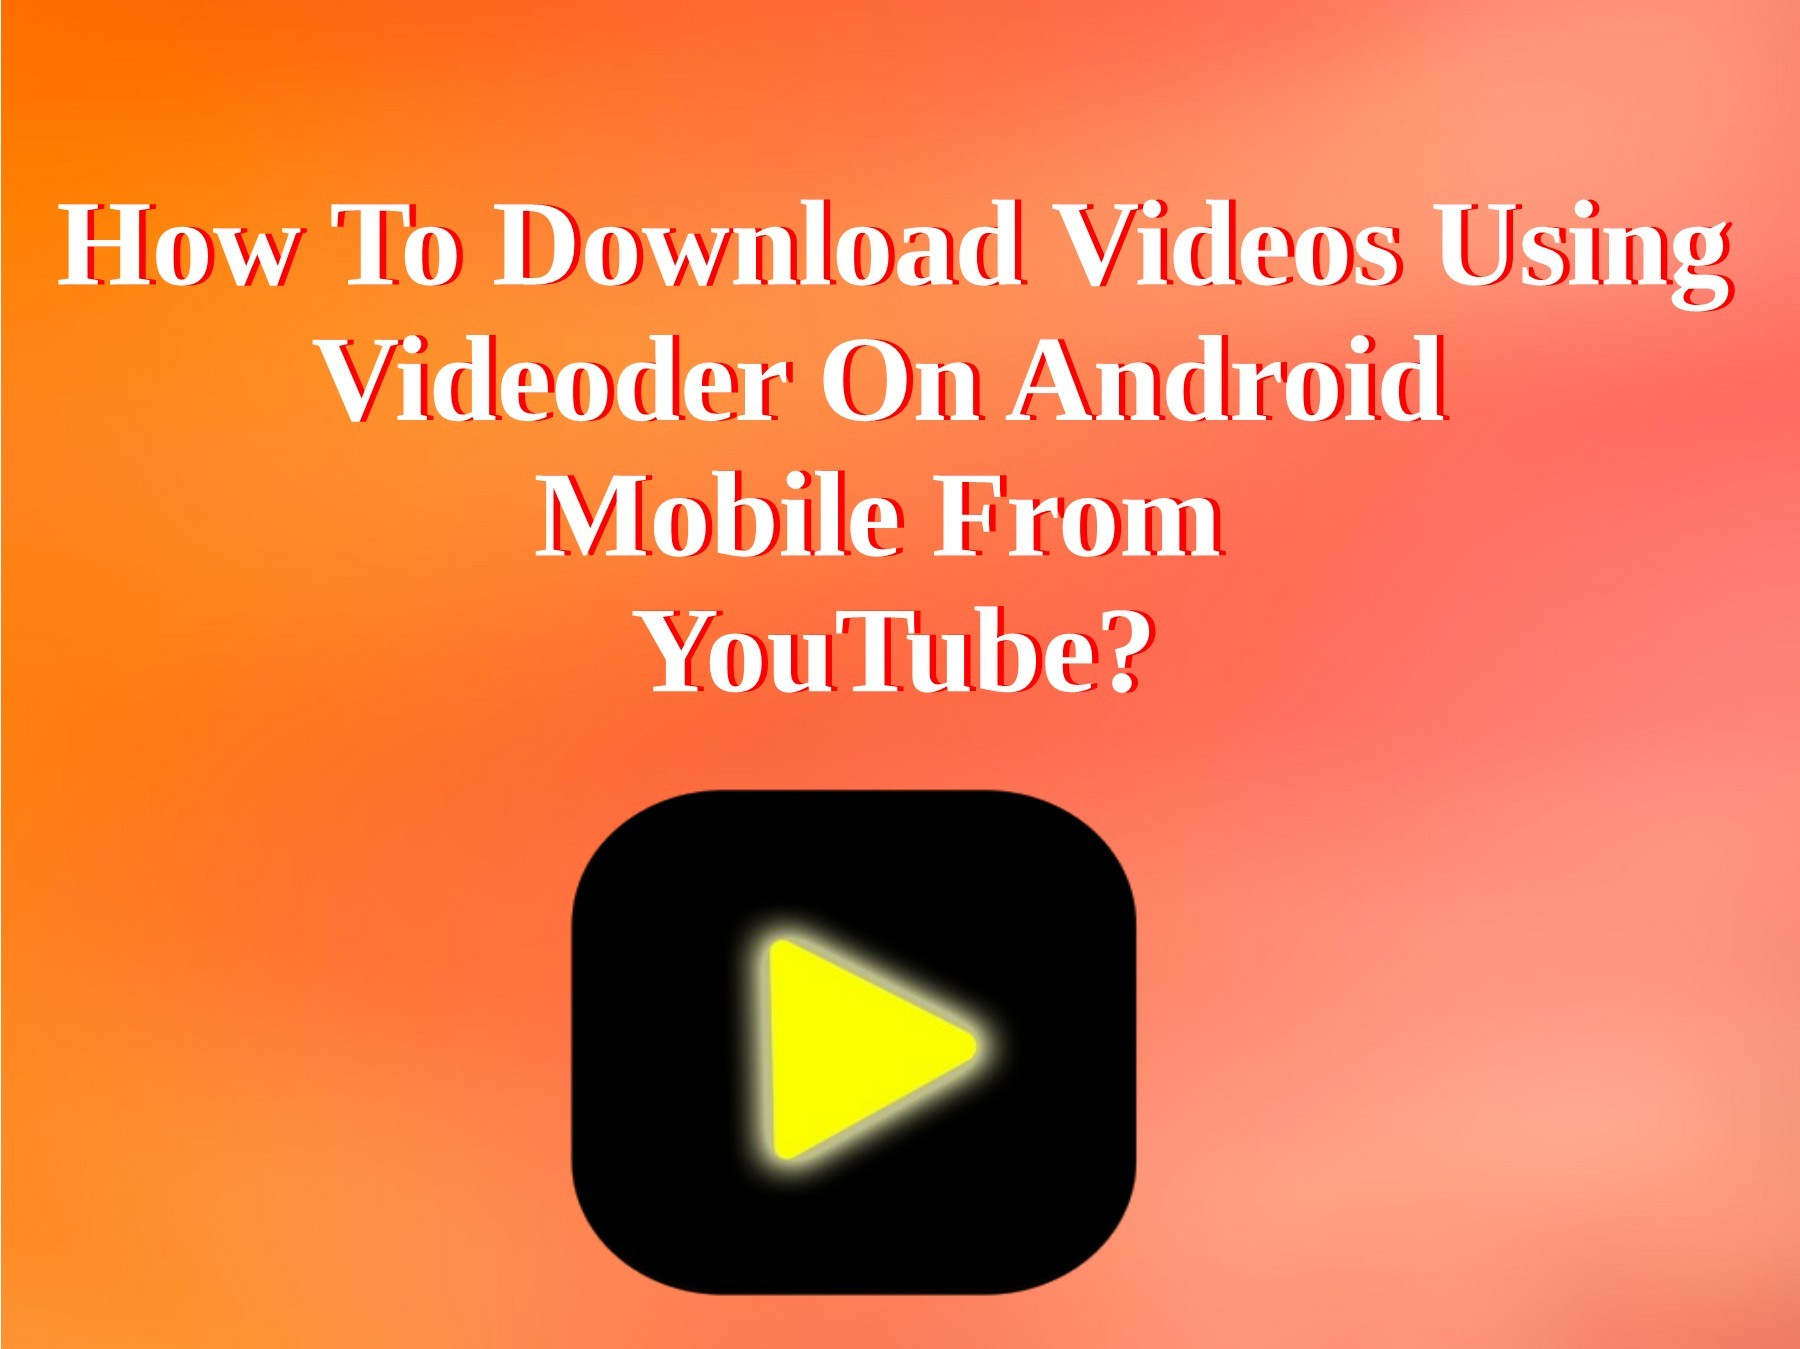 How to download videos using Videoder on android mobile from